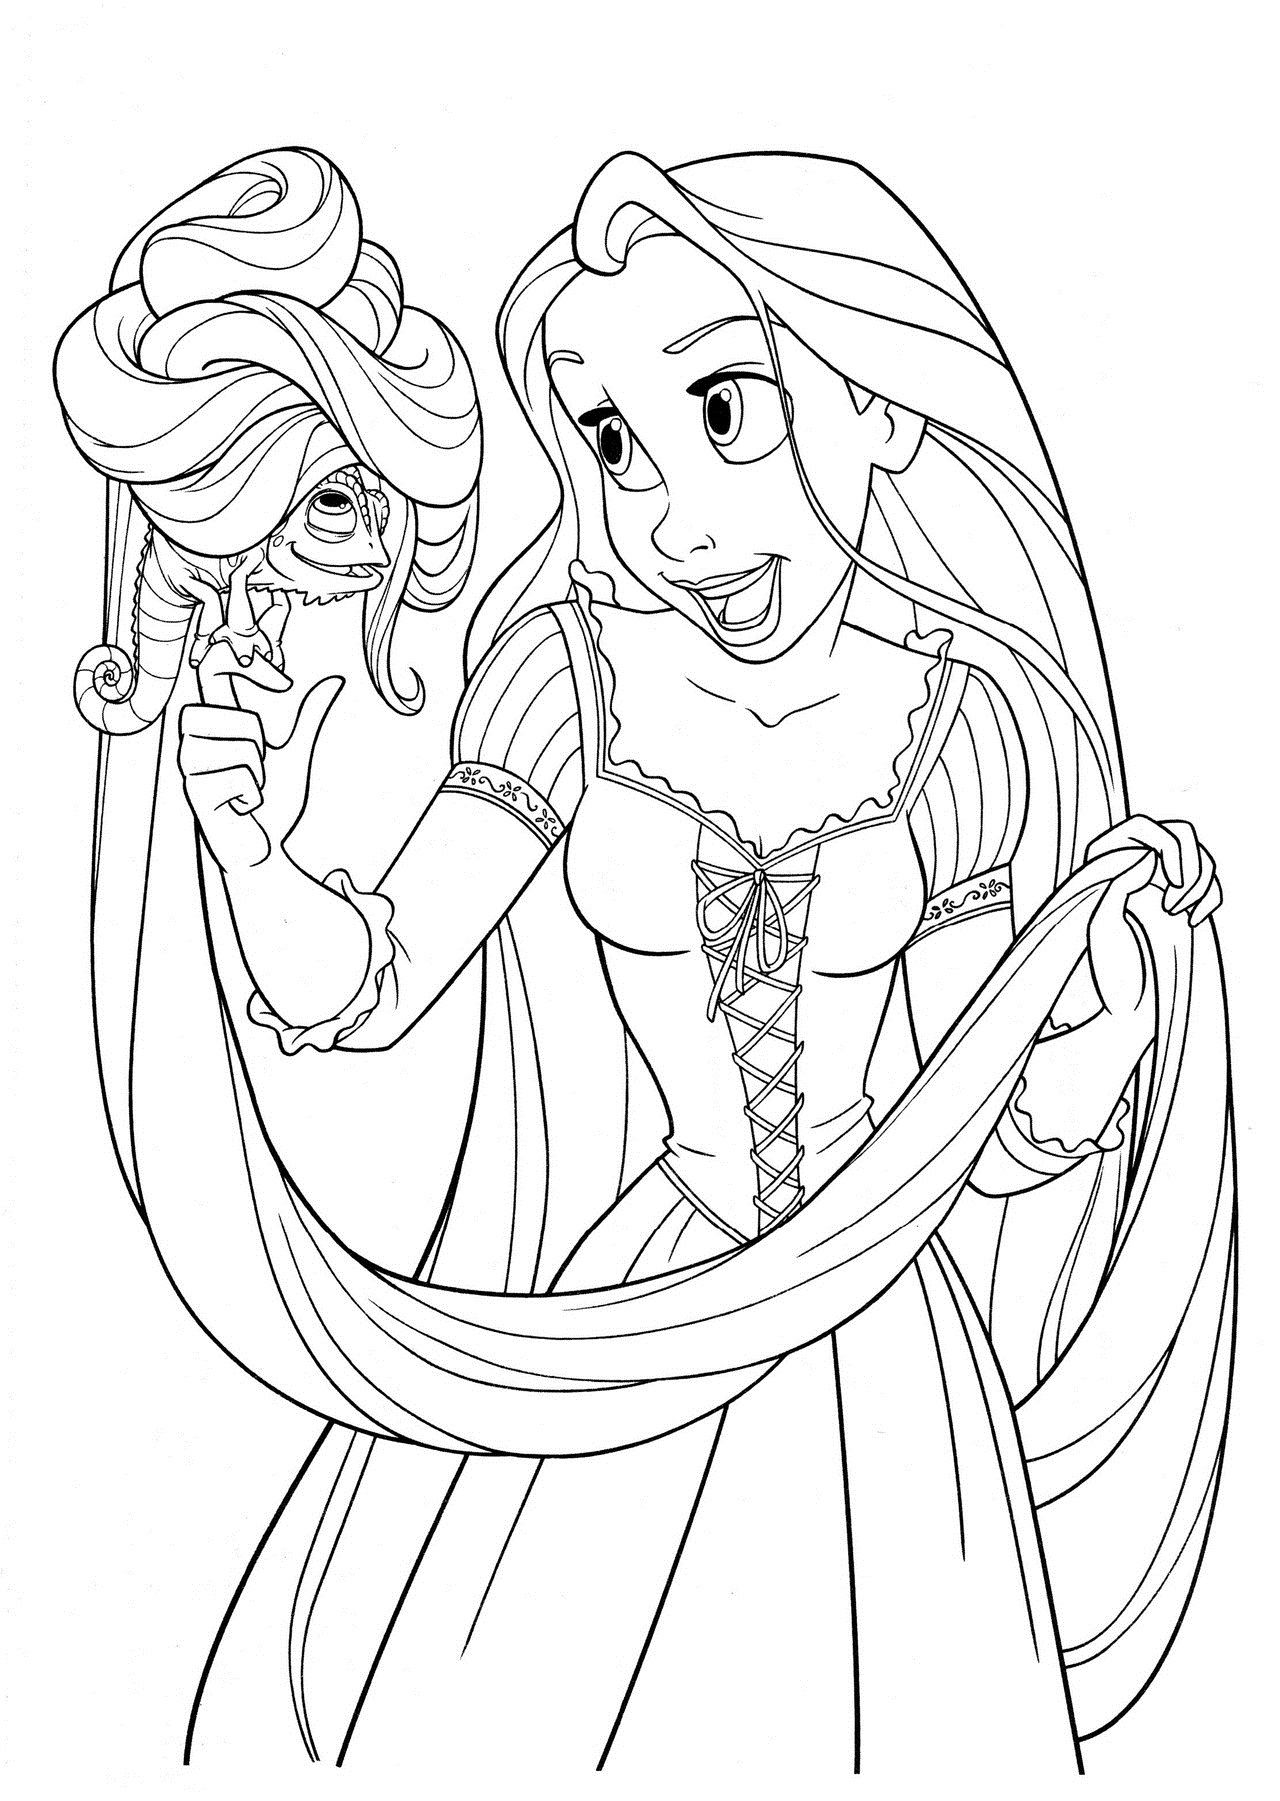 Printable coloring pages tangled - Disney Tangled Coloring Pages Printable Free Printable Tangled Coloring Pages For Kids